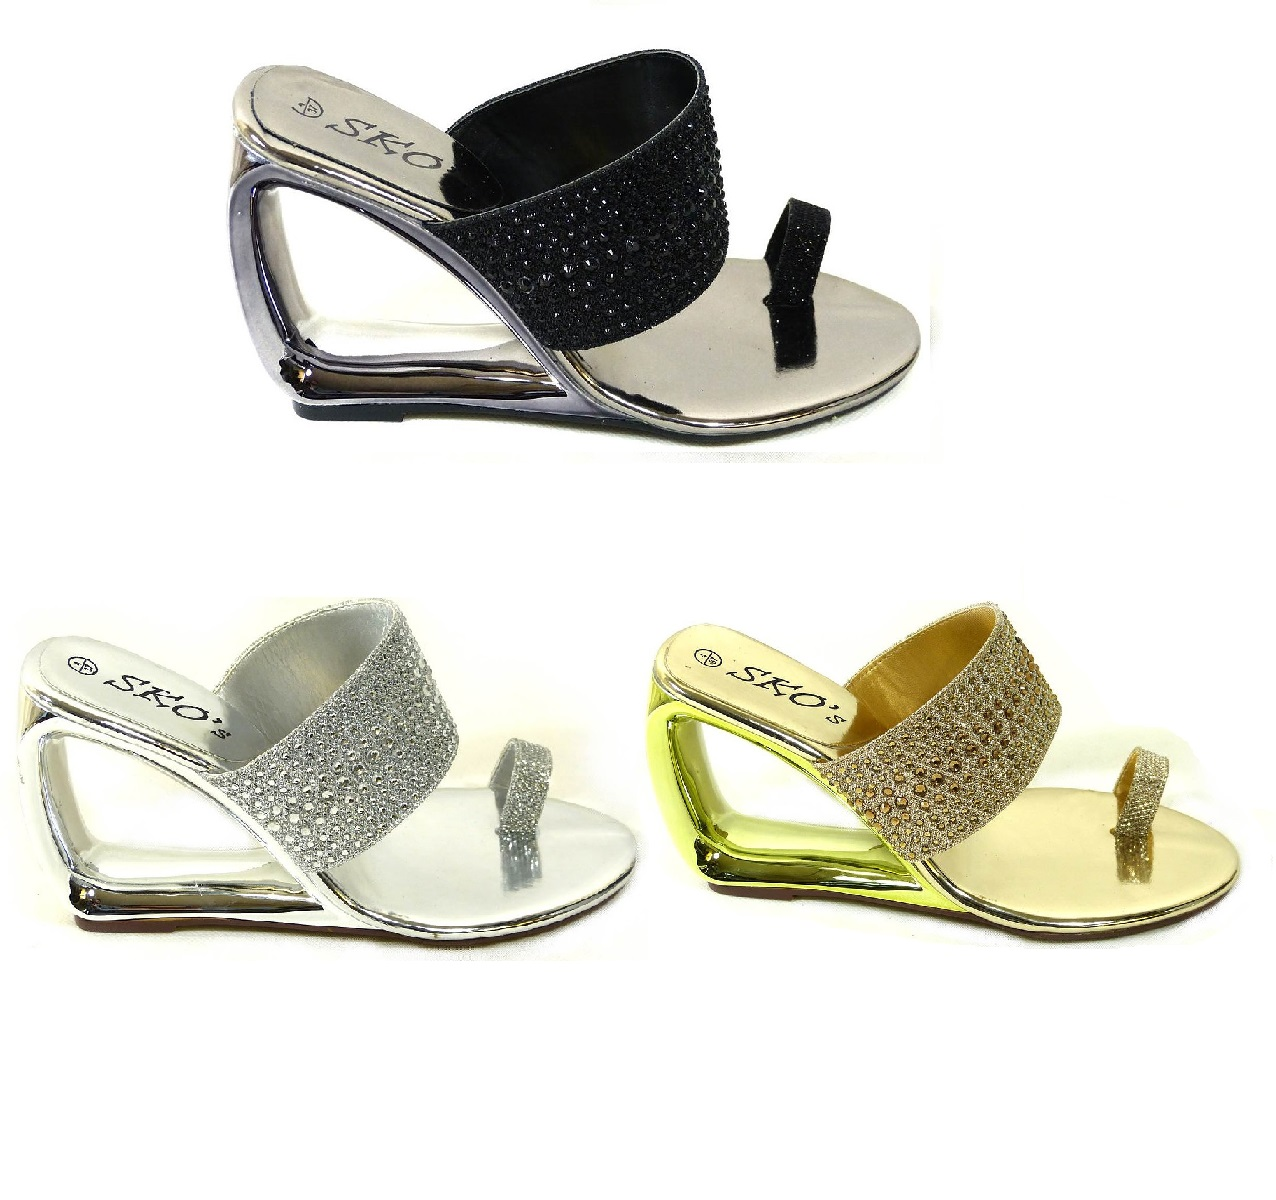 3efe5987c86e0 LADIES TOE POST WEDGE SANDALS WOMENS HIGH HEELS FANCY EVENING PARTY SHOES  SIZE